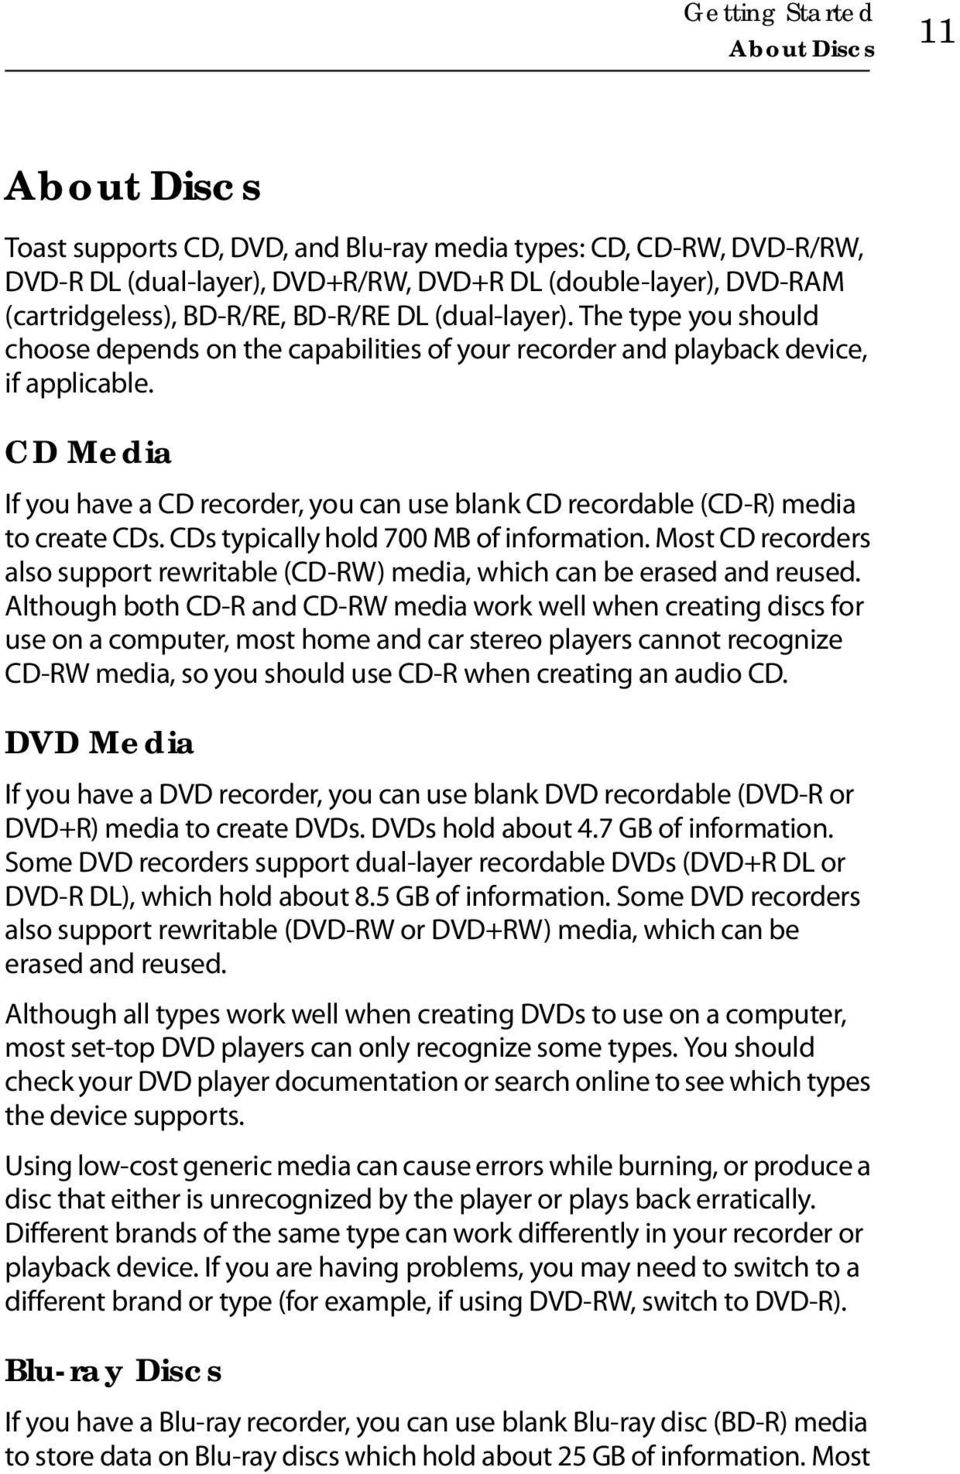 CD Media If you have a CD recorder, you can use blank CD recordable (CD-R) media to create CDs. CDs typically hold 700 MB of information.